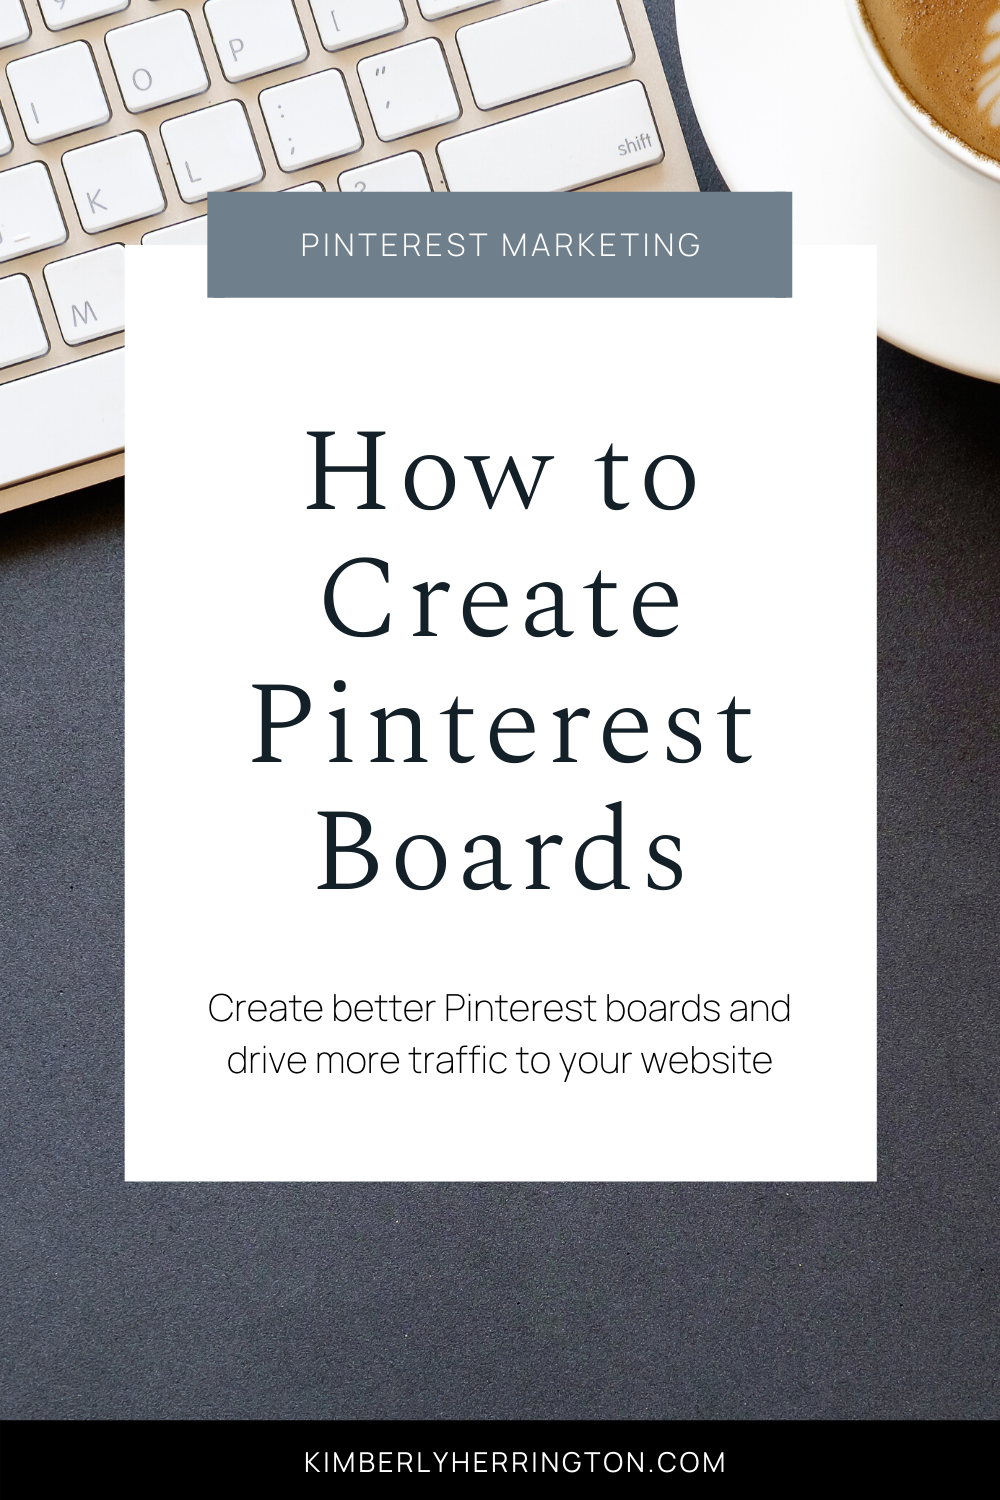 How to Create Pinterest Boards